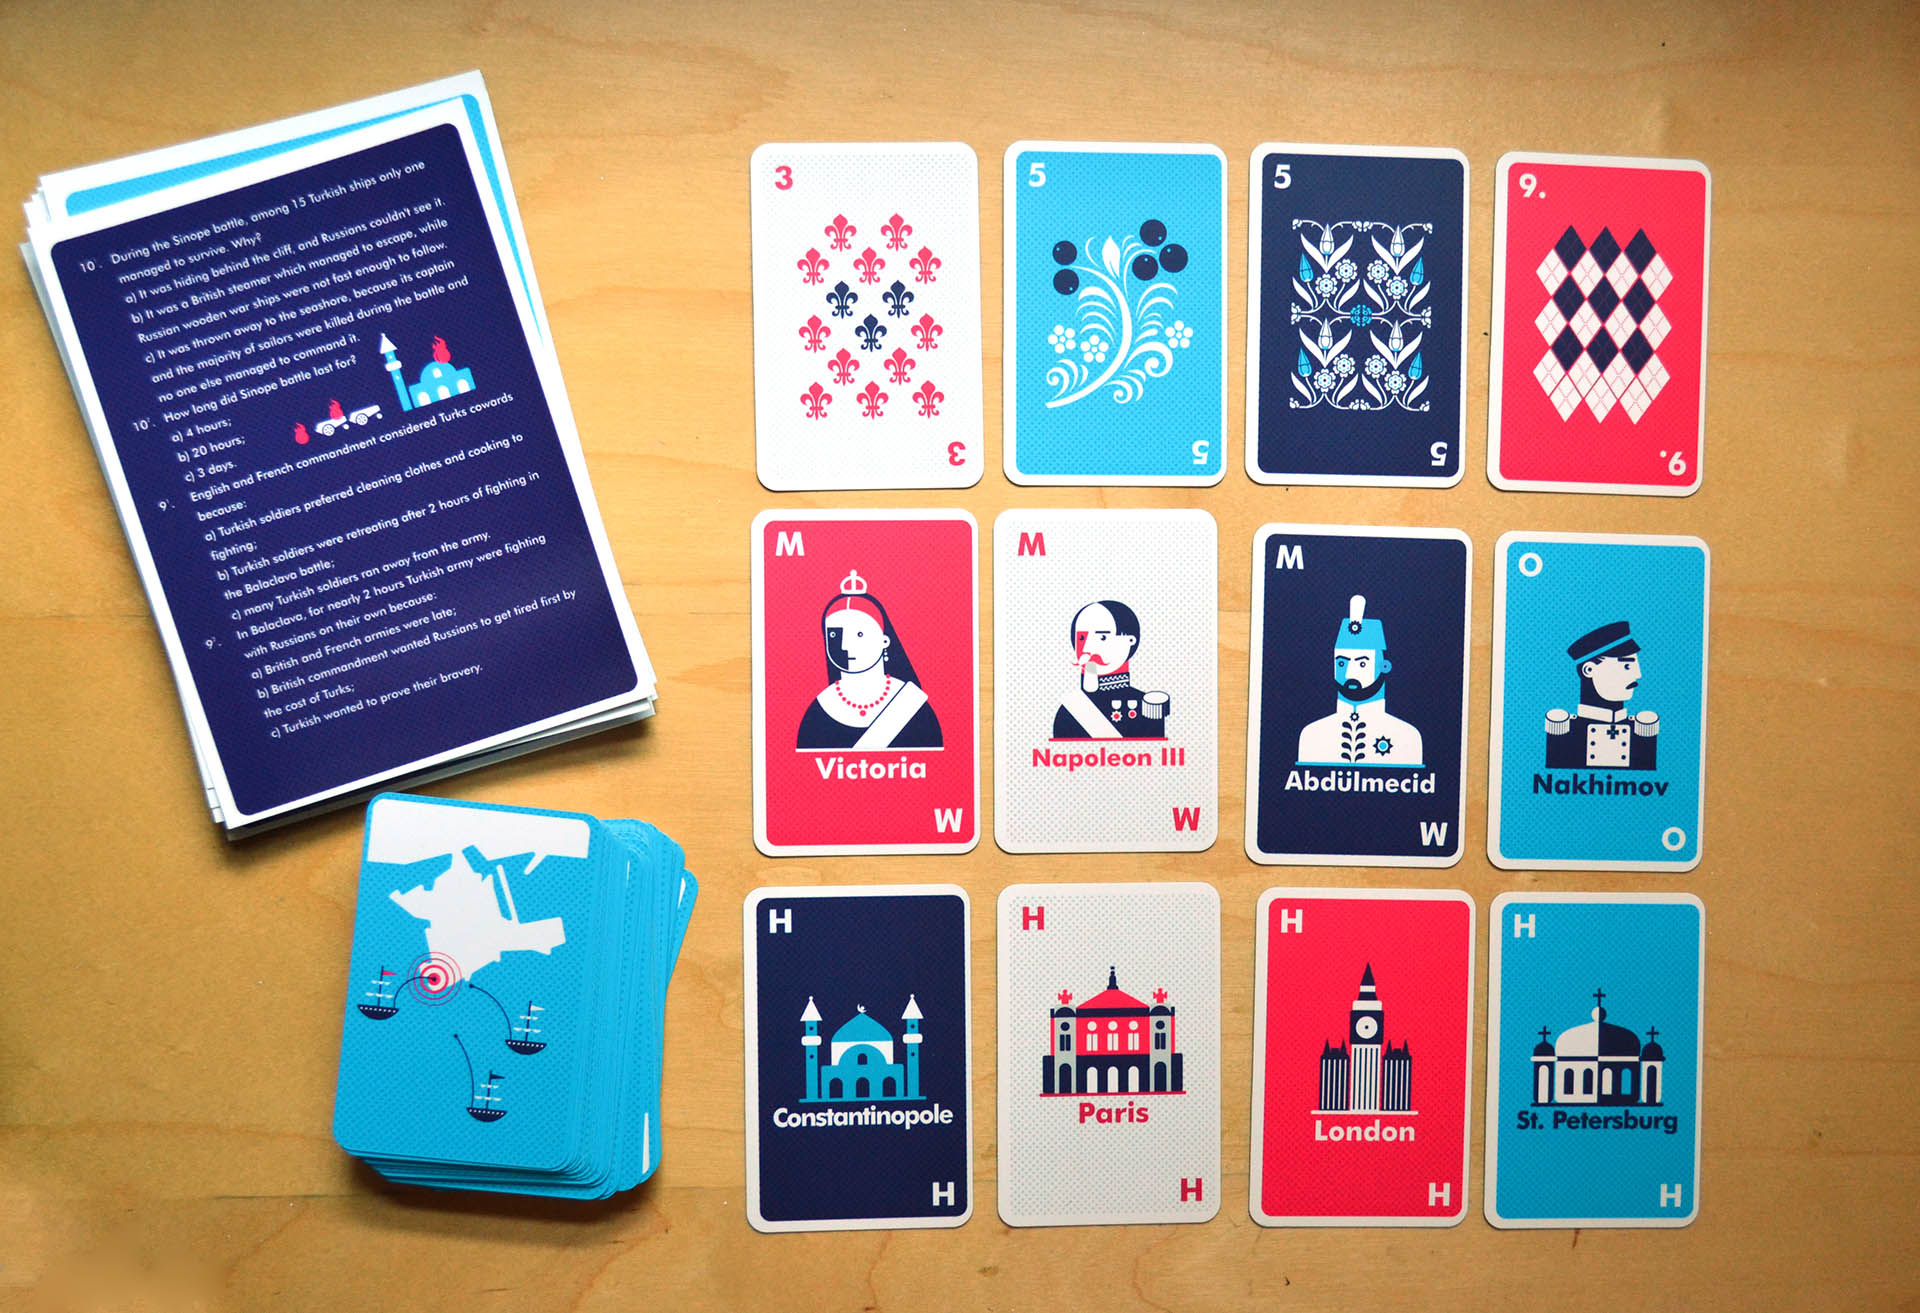 The deck of cards features personalities of Russian, British, Ottoman and Second French Empires of 1853-56